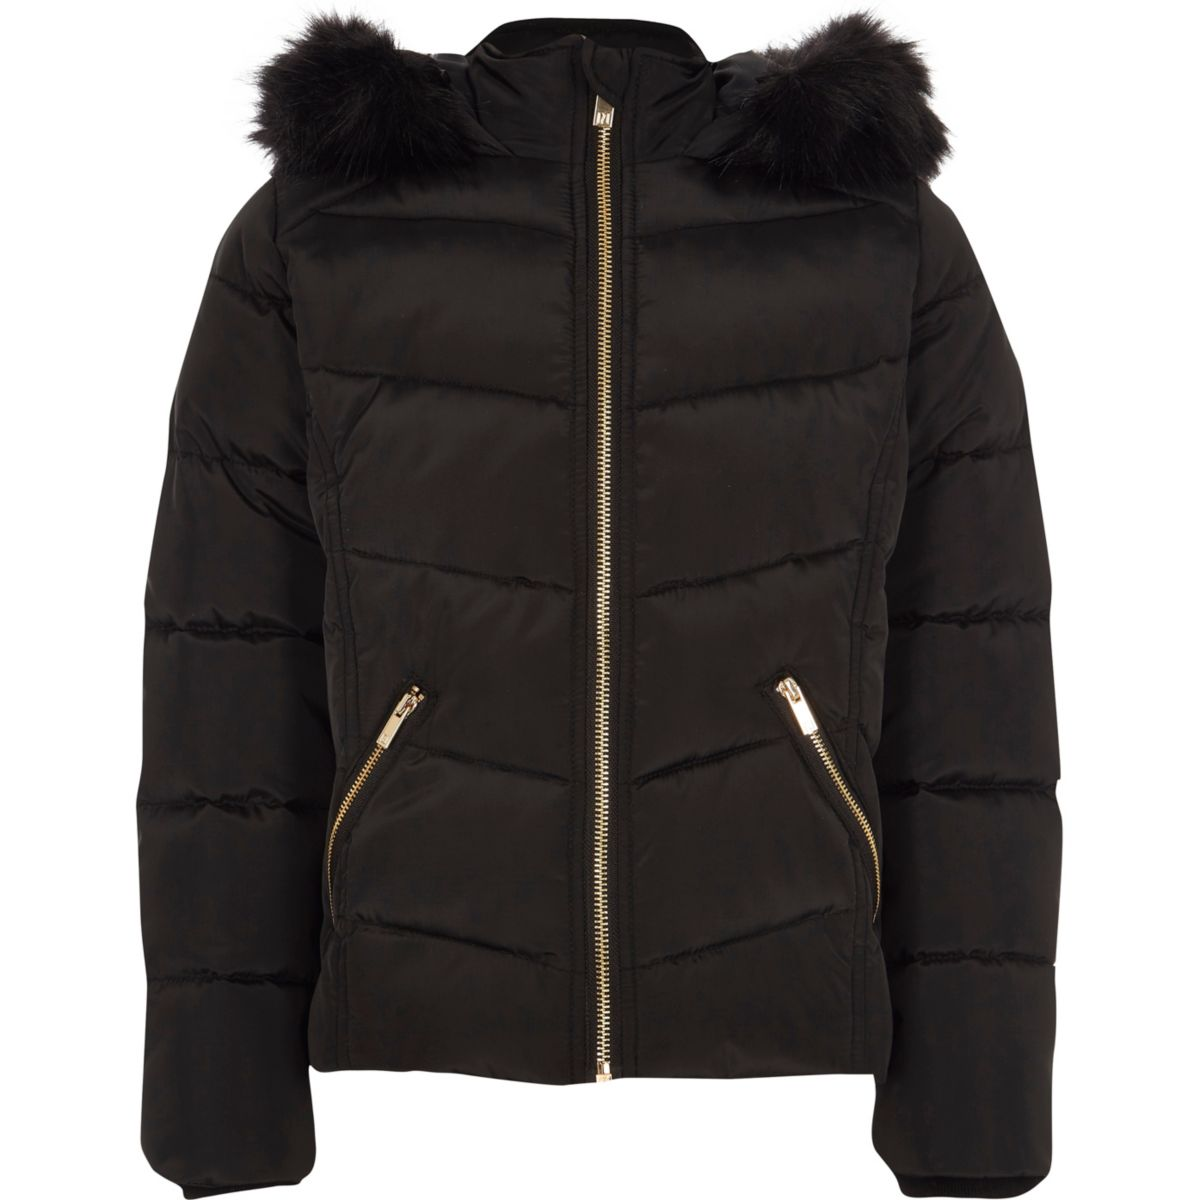 Girls black faux fur hood puffer jacket - Jackets - Coats ...